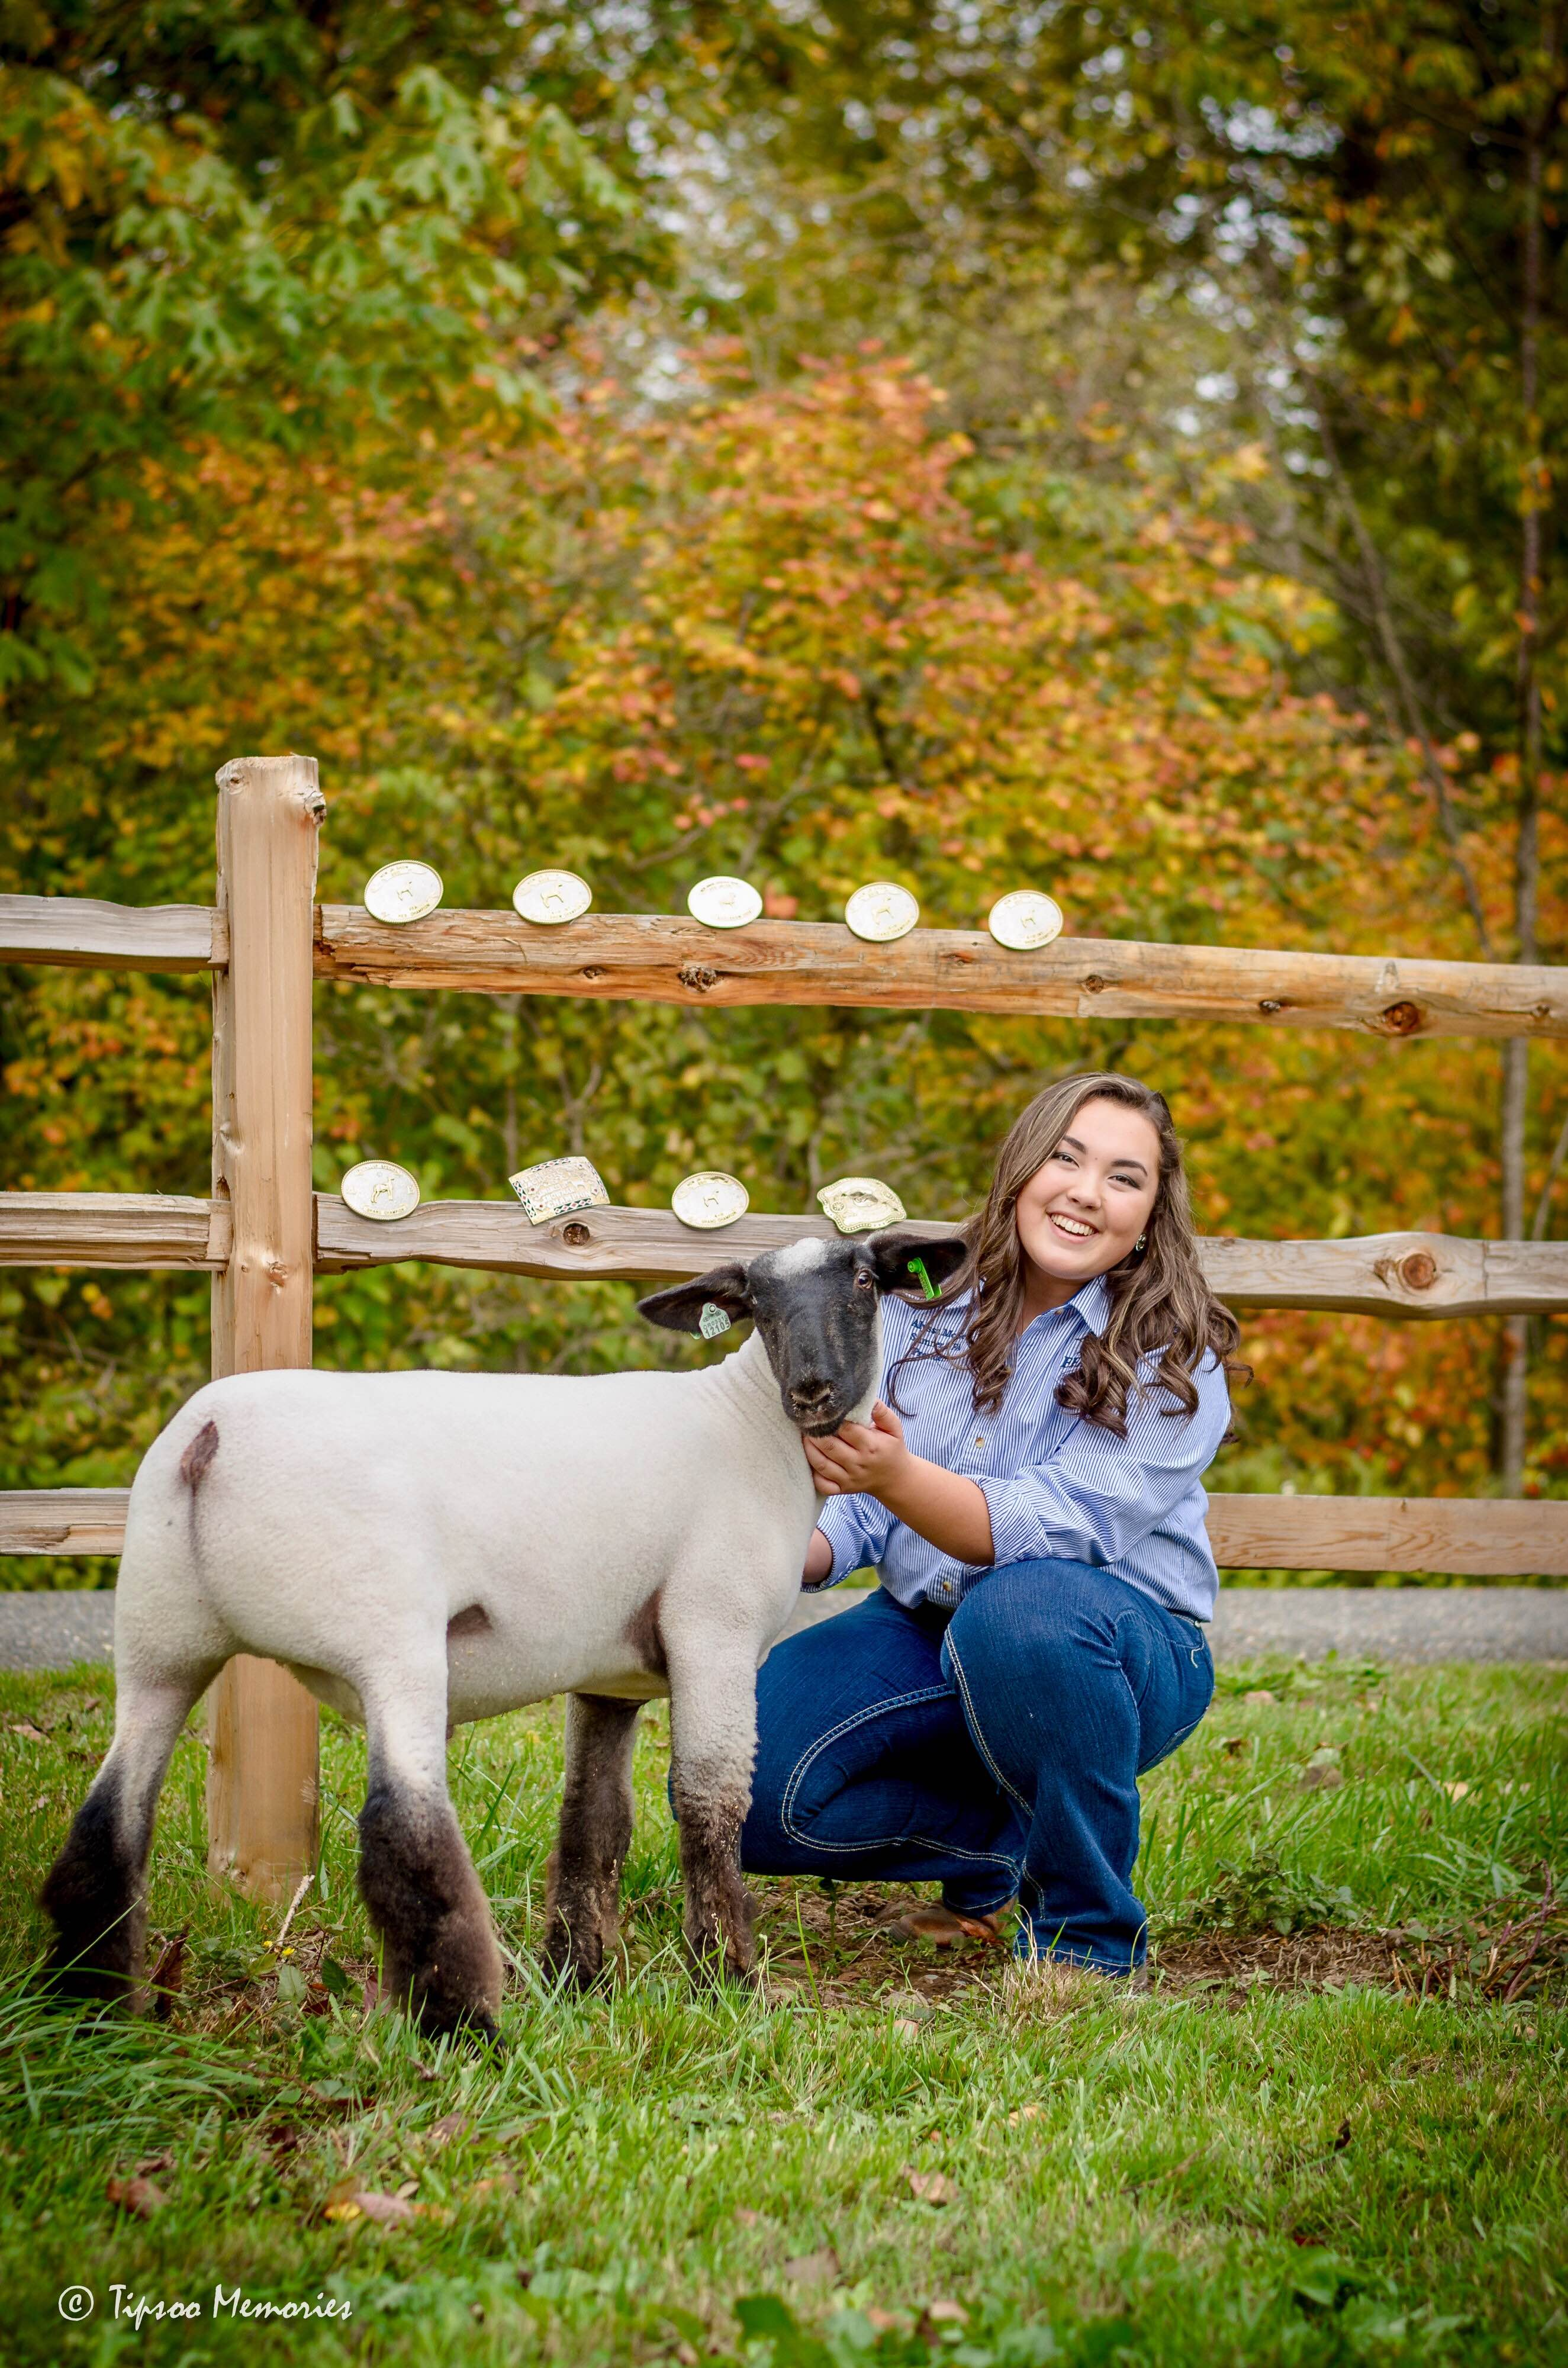 Sure Champ Senior Photo Ideas: Show Lamb